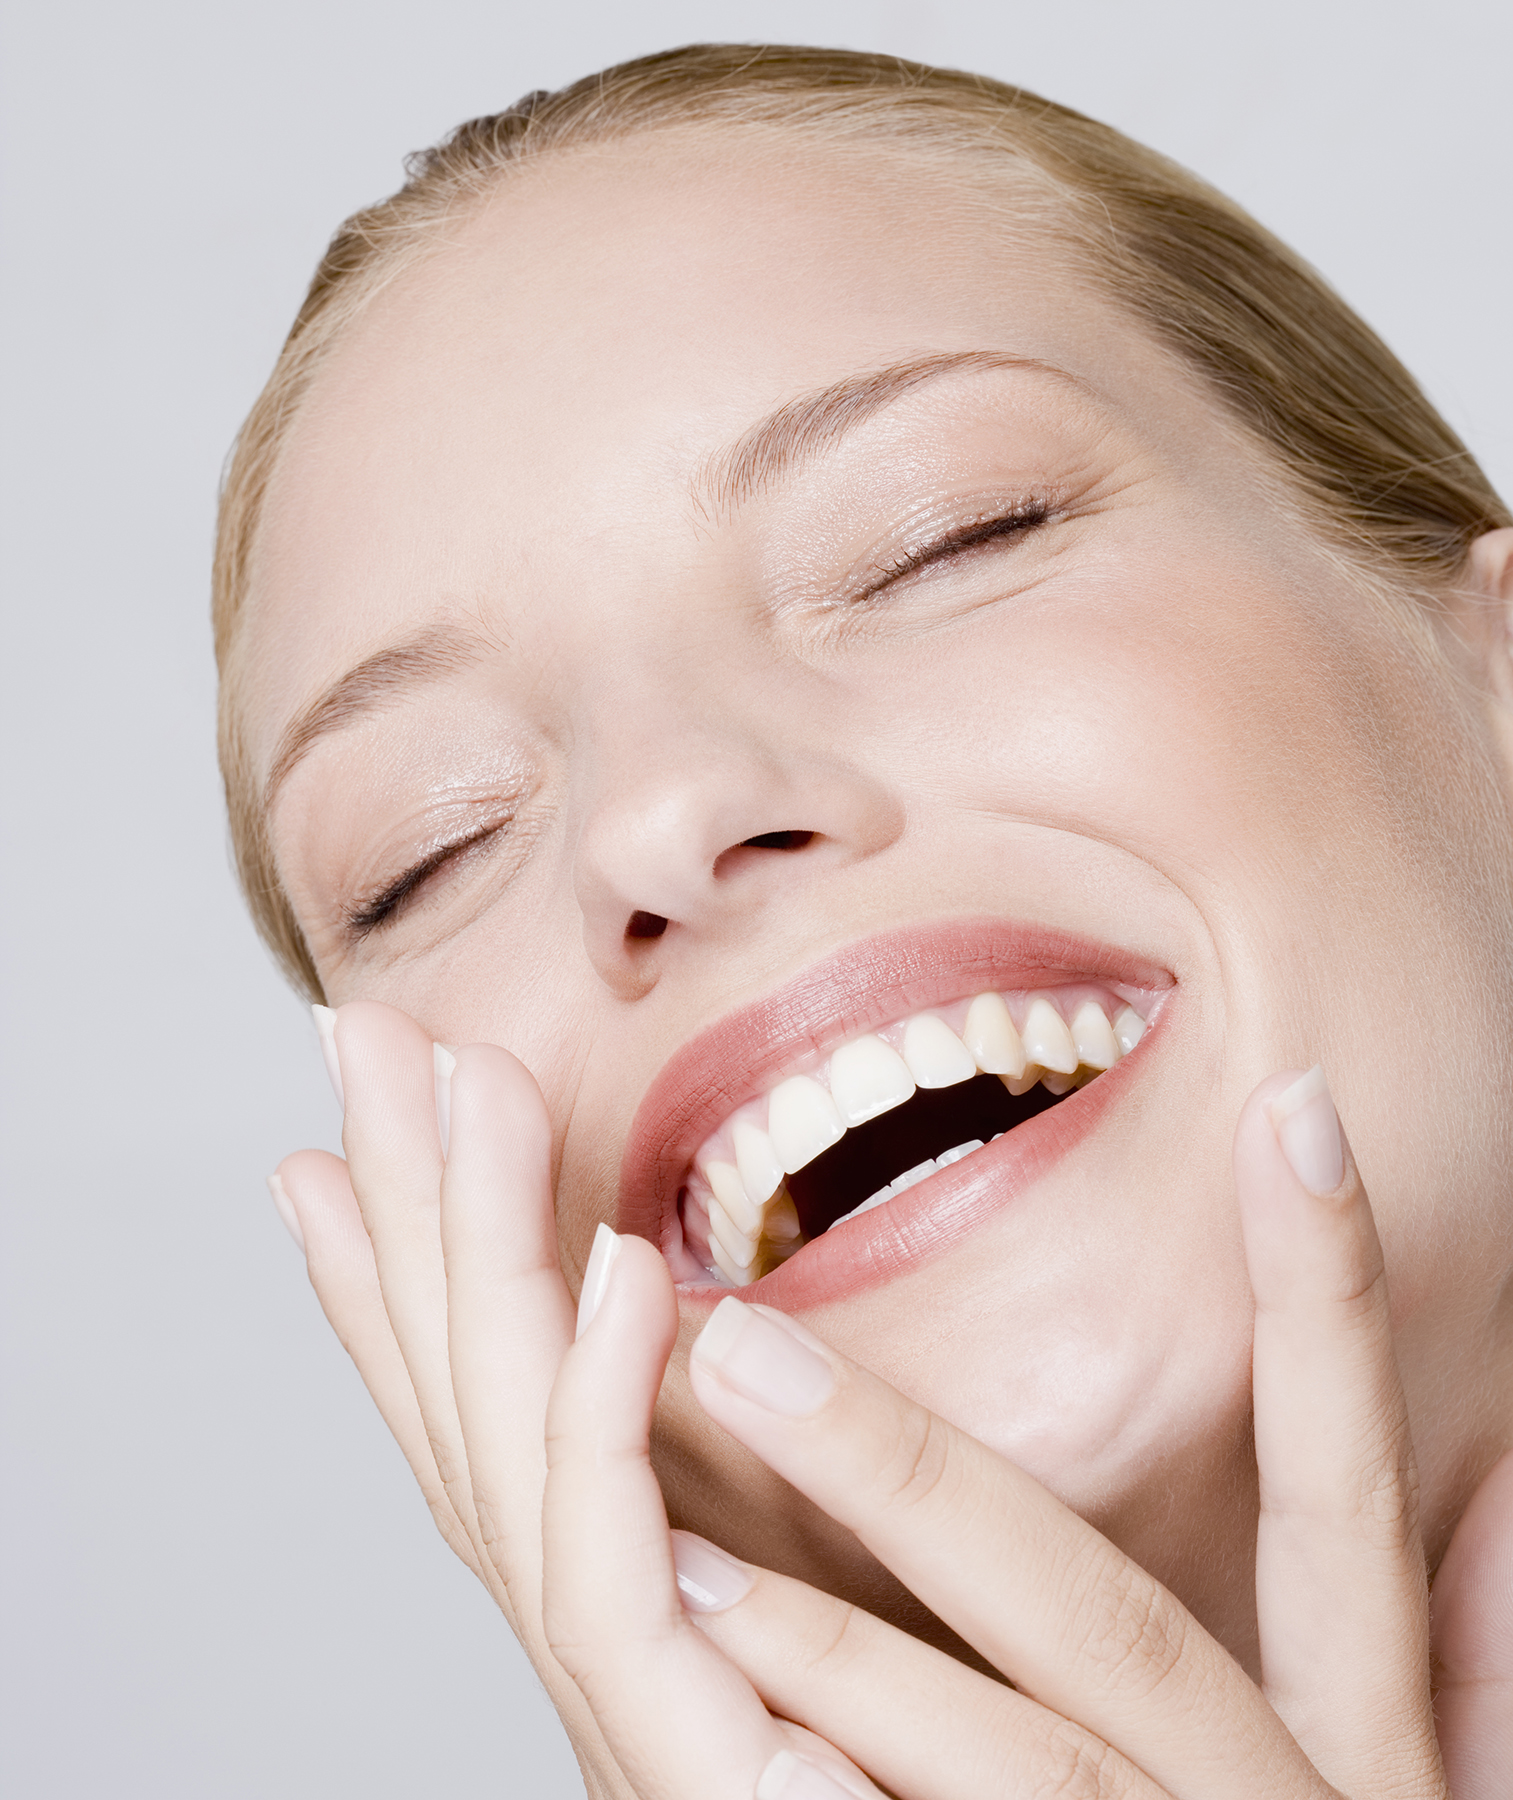 Woman laughing with hands on face